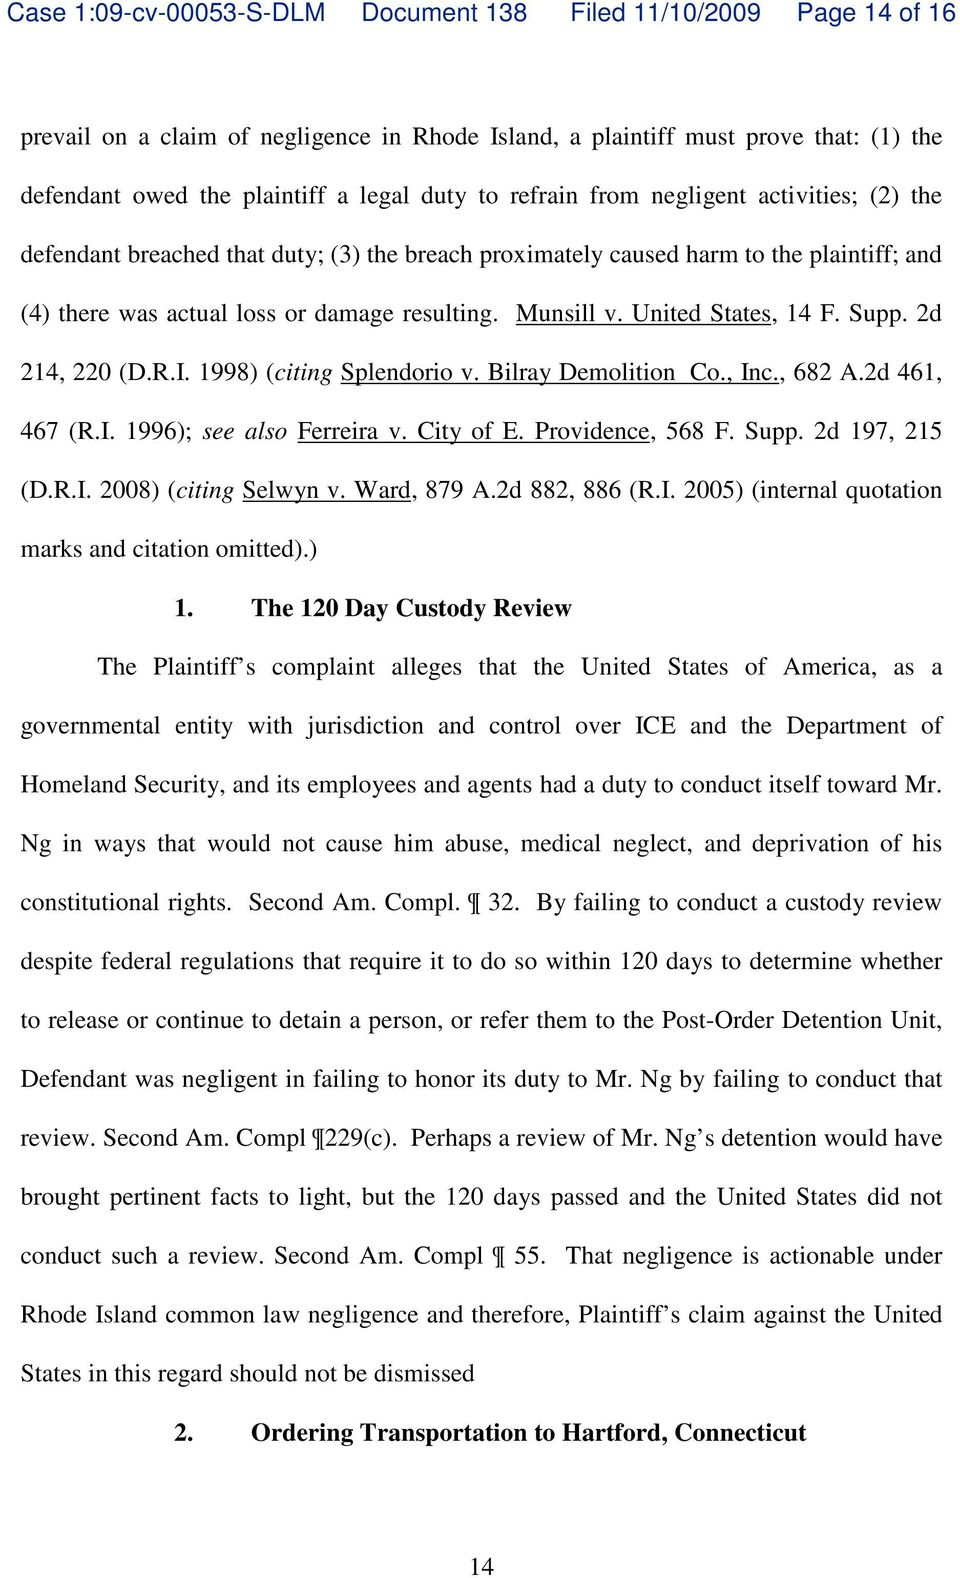 United States, 14 F. Supp. 2d 214, 220 (D.R.I. 1998) (citing Splendorio v. Bilray Demolition Co., Inc., 682 A.2d 461, 467 (R.I. 1996); see also Ferreira v. City of E. Providence, 568 F. Supp. 2d 197, 215 (D.